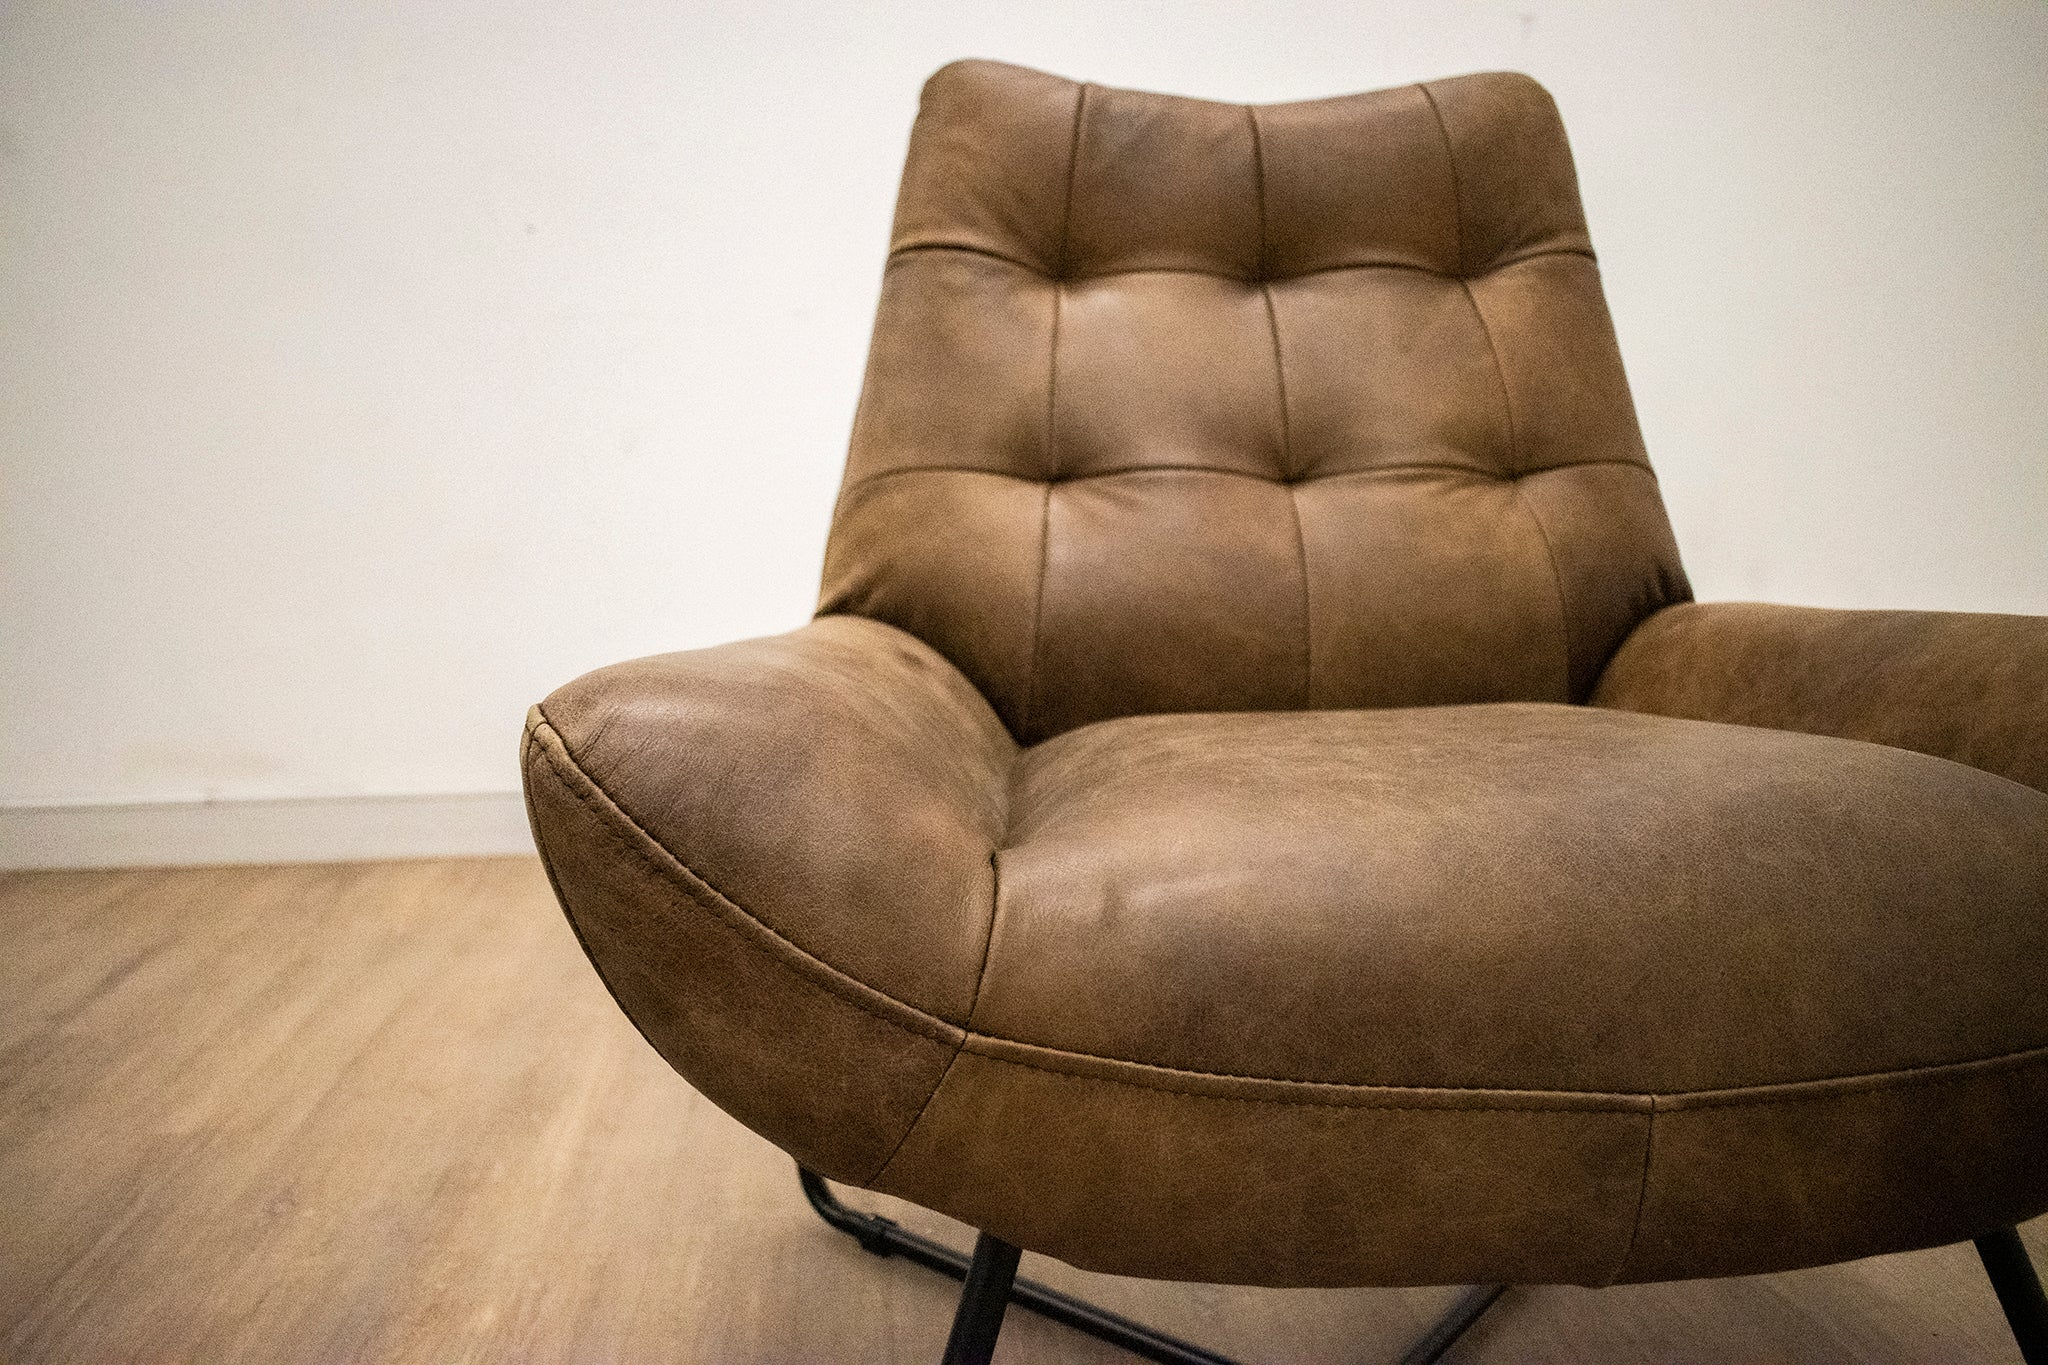 ELLIOTT LEATHER CHAIRS-furniture stores regina-Hunters Furniture